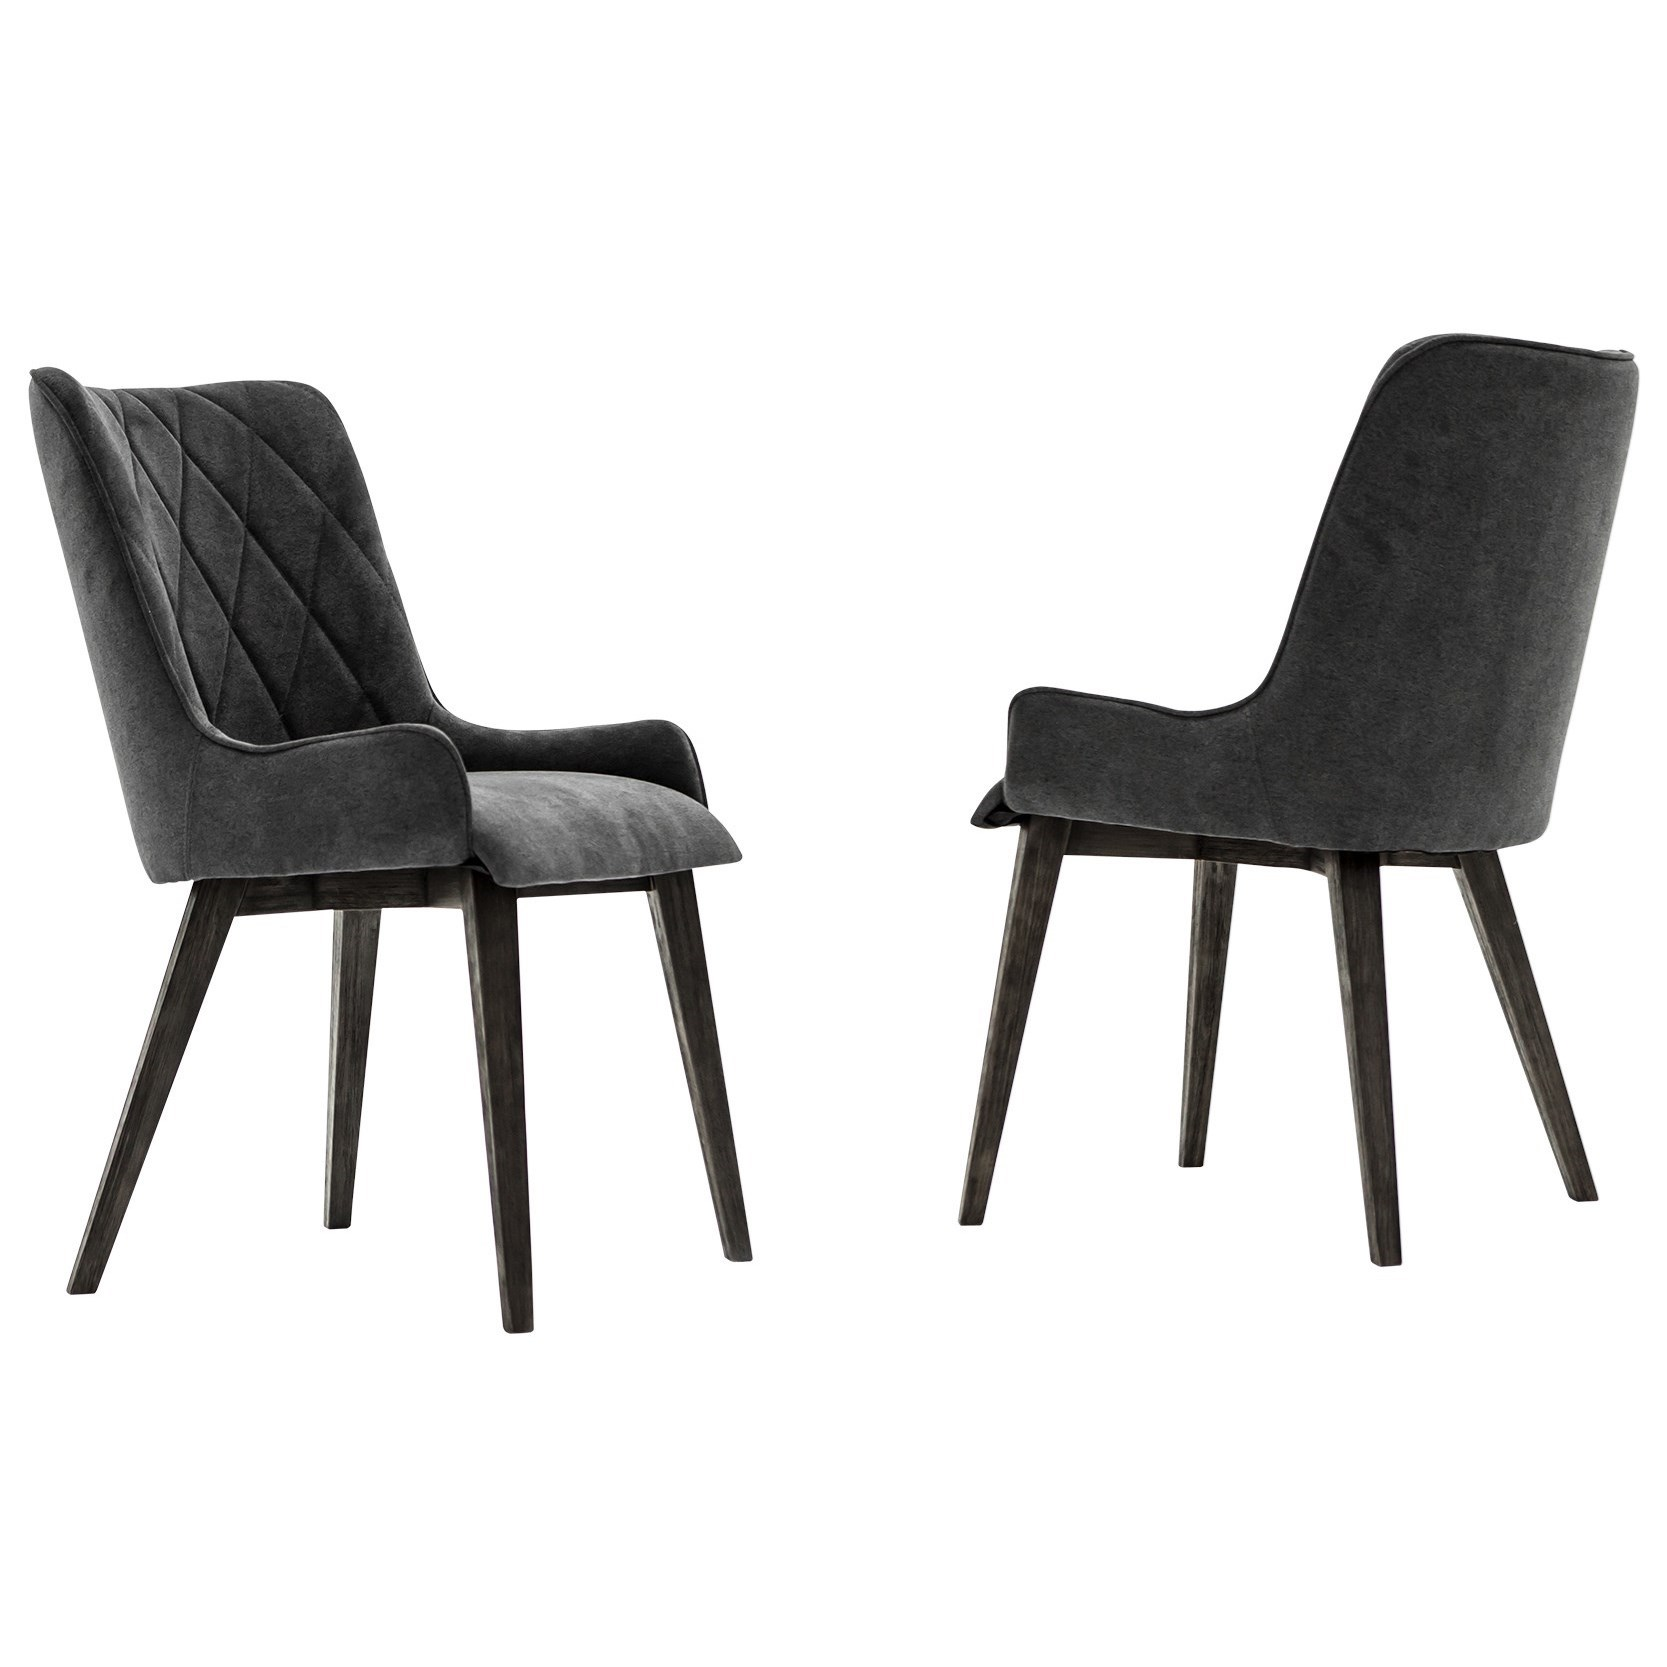 Charcoal Upholstered Dining Chair Set